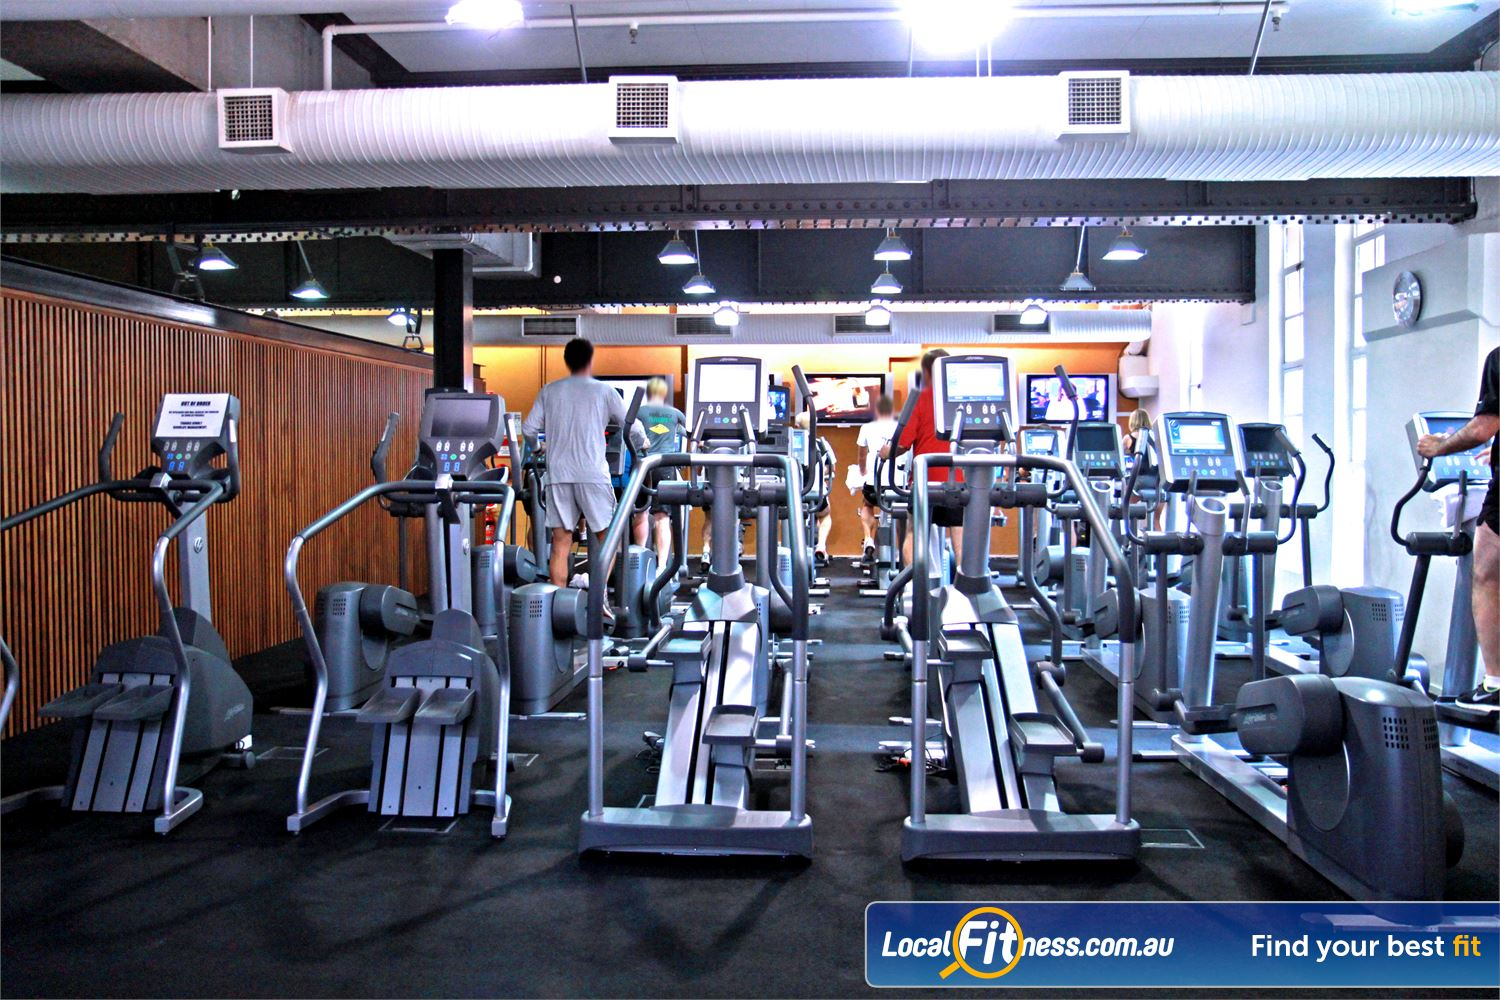 Goodlife Health Clubs Martin Place Near Strawberry Hills Our exclusive Sydney gym provides state of the art cardio from Life Fitness.